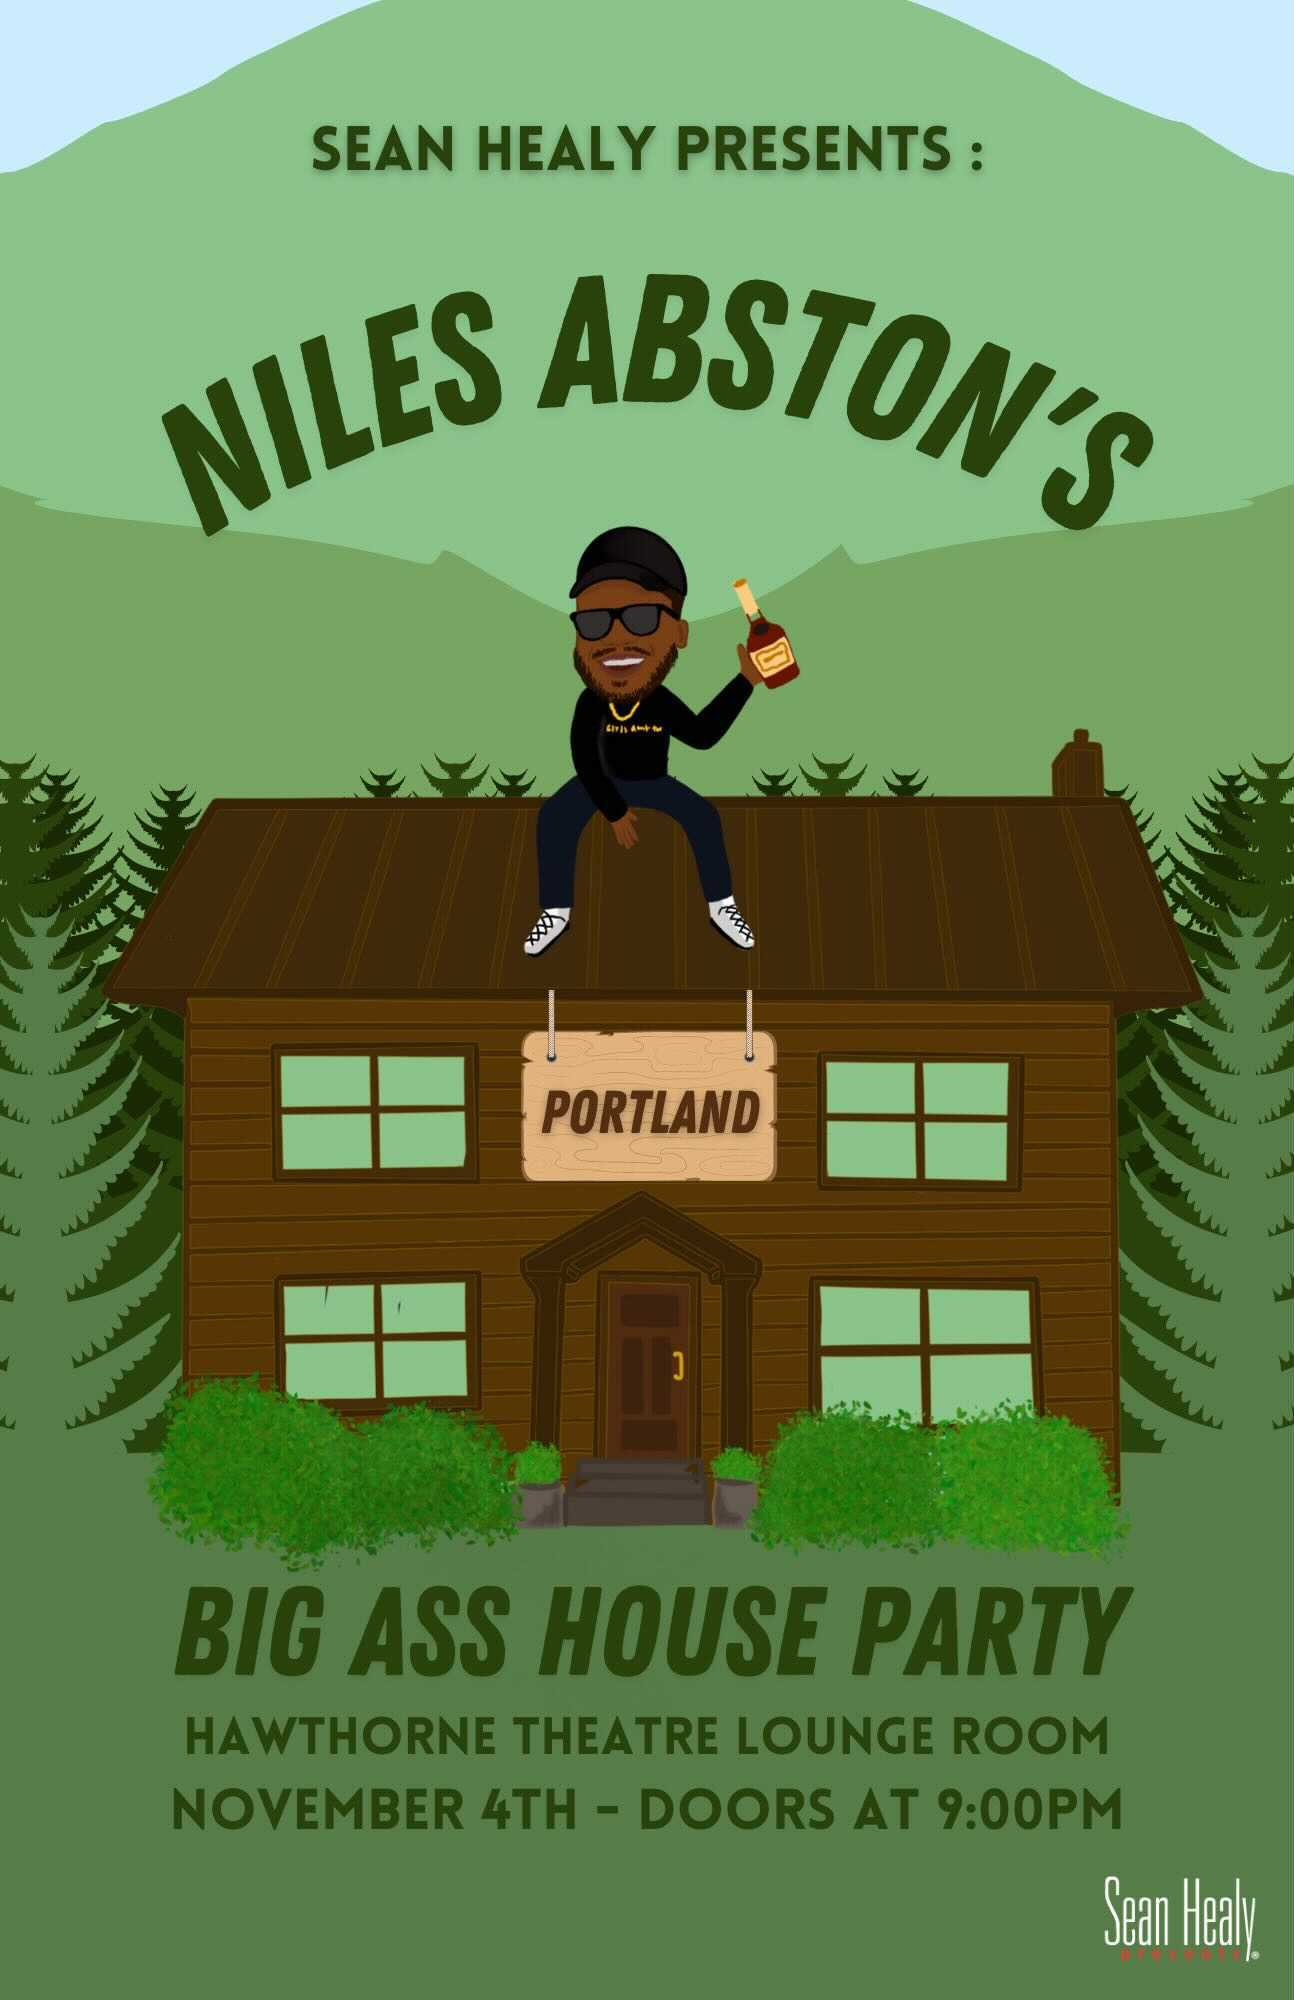 Image for The Clown Cast LIVE & Niles Abston's Big A$$ Party